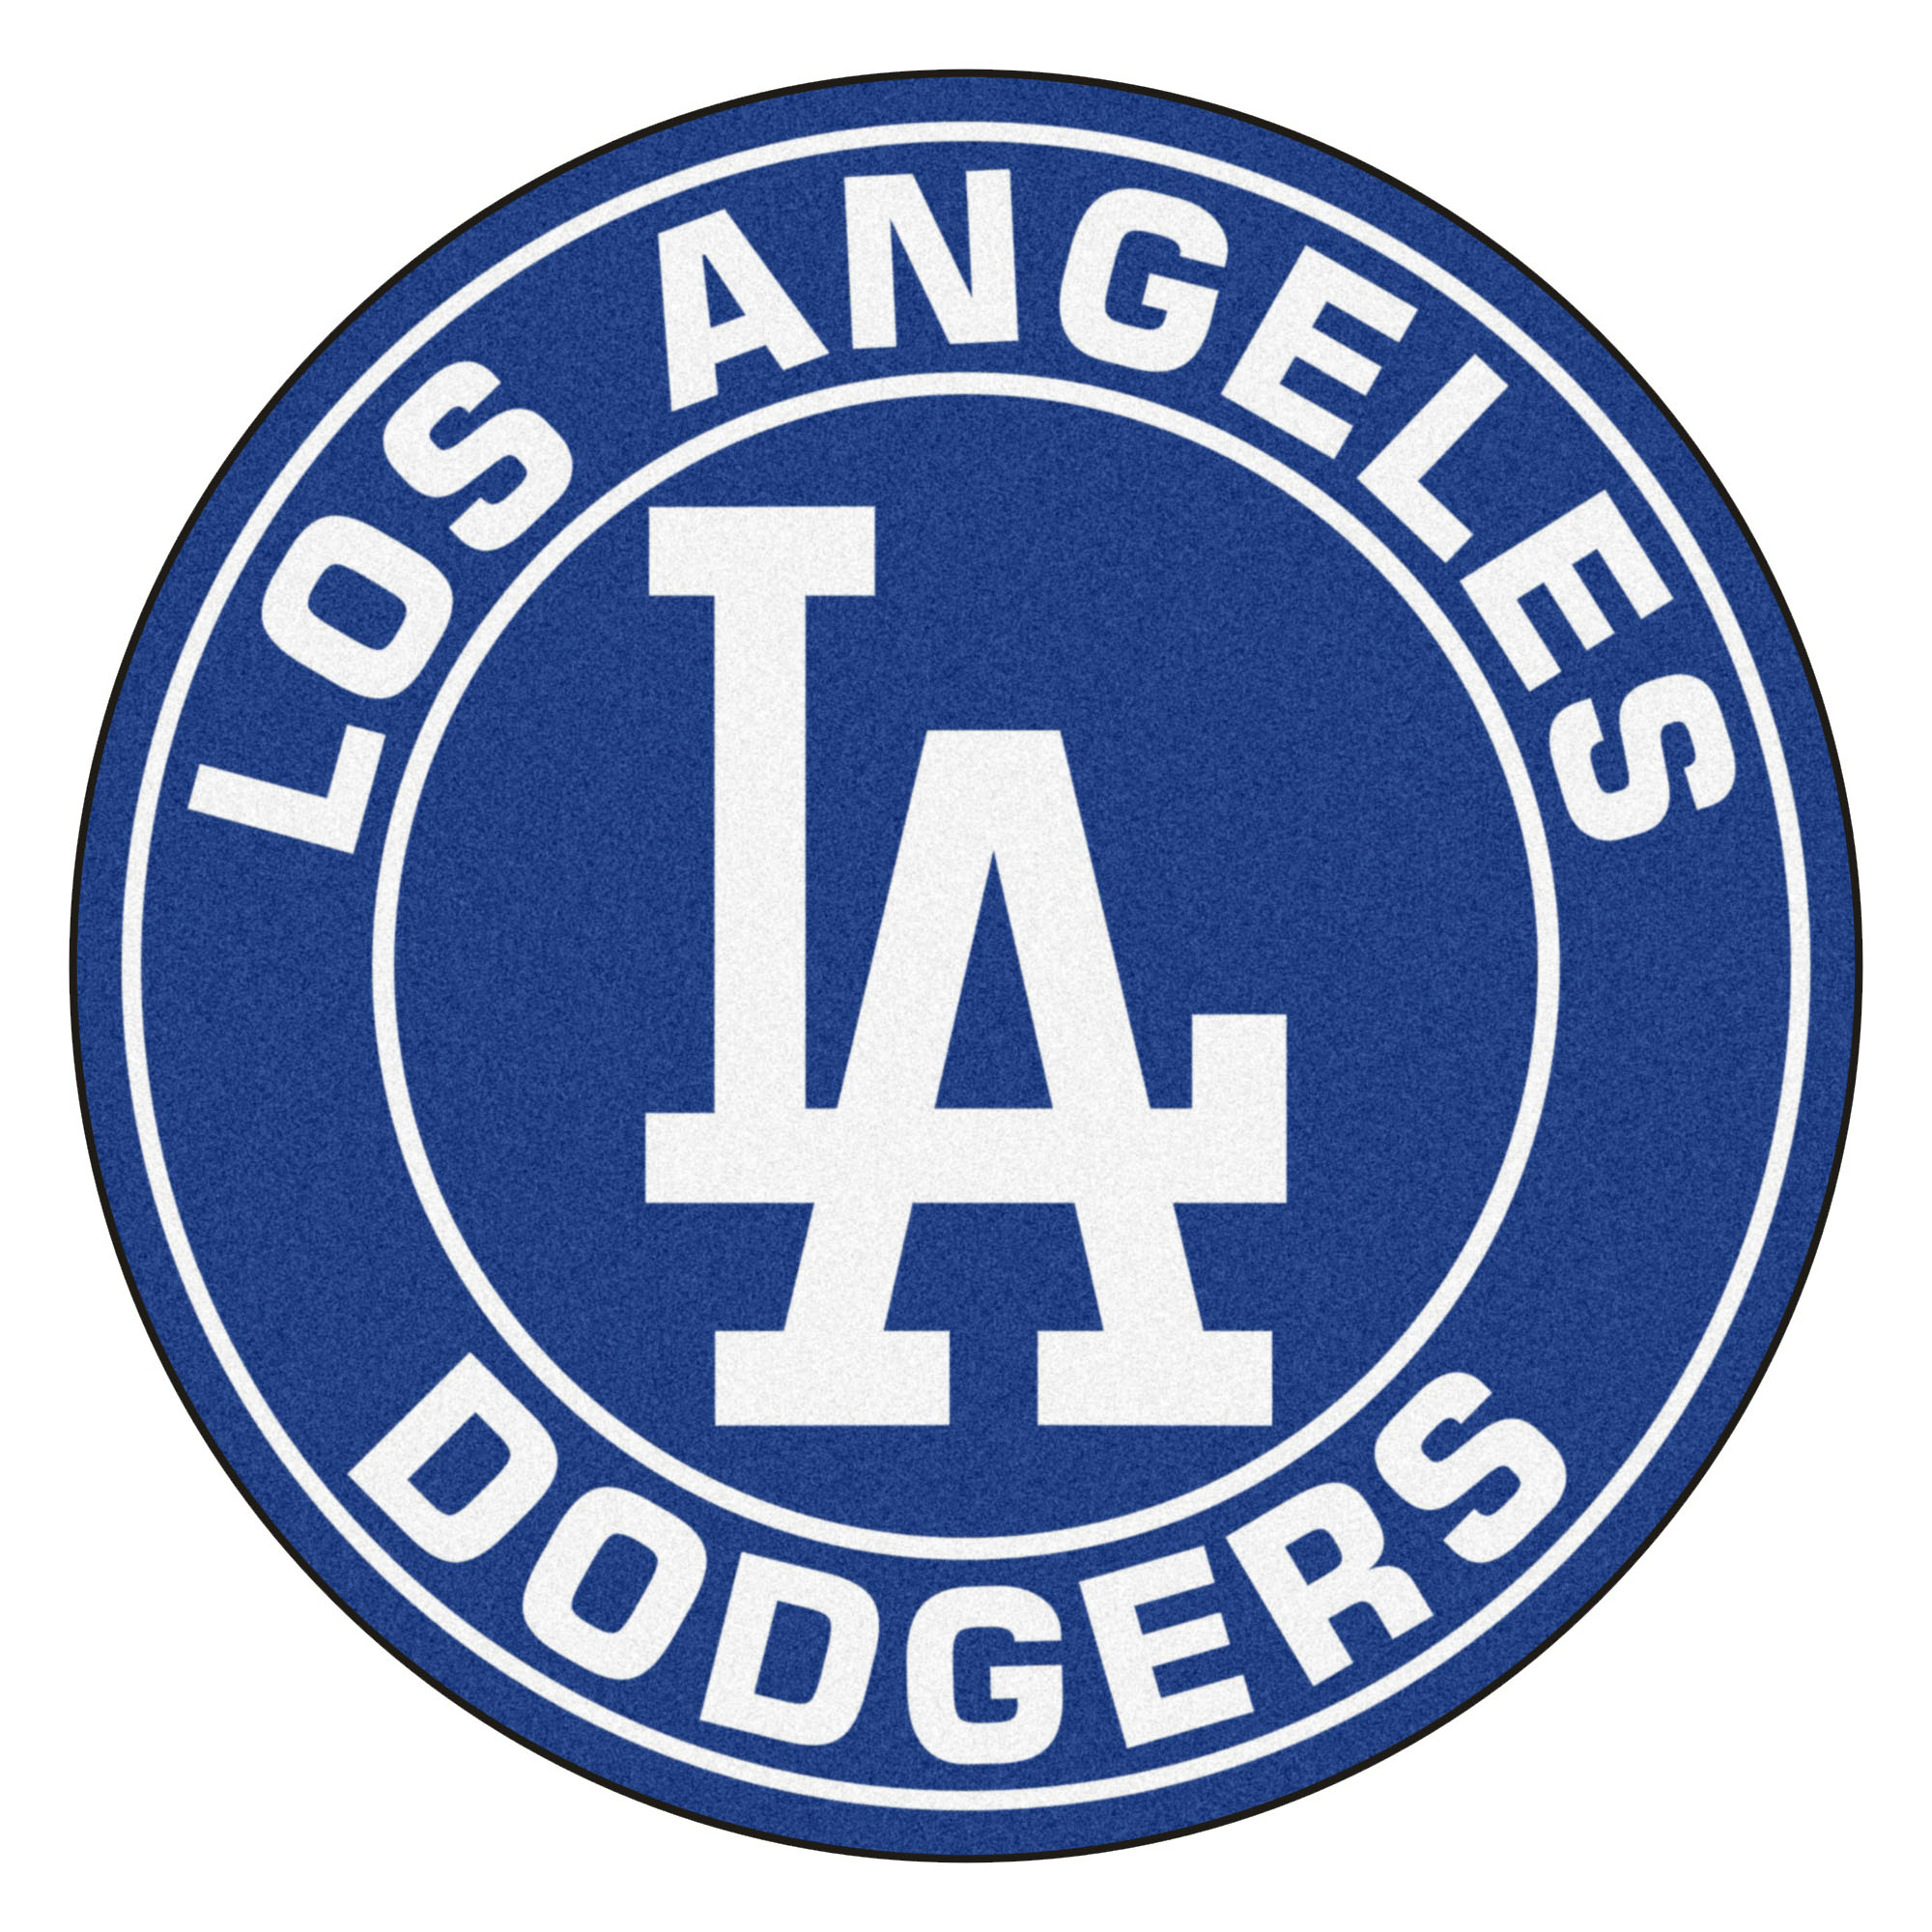 presale codes to purchase tickets for los angeles dodgers 2017